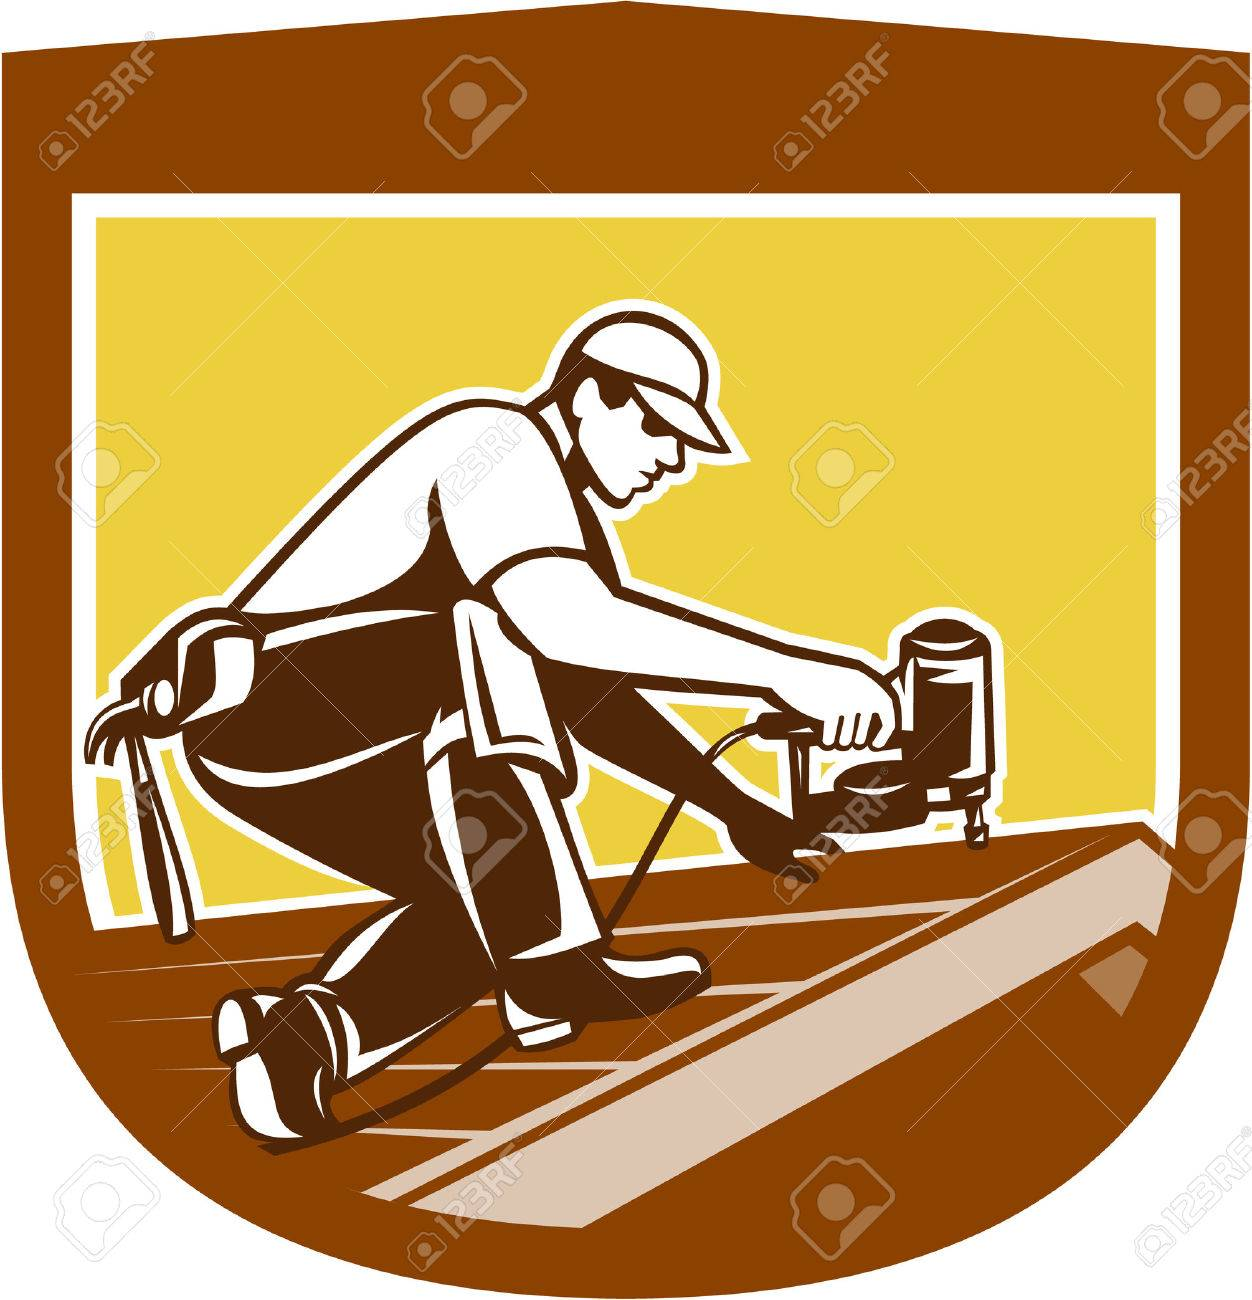 Illustration of a roofer construction worker roofing working on house roof with nail gun nailgun nailer done in retro style. Stock Vector - 28260567